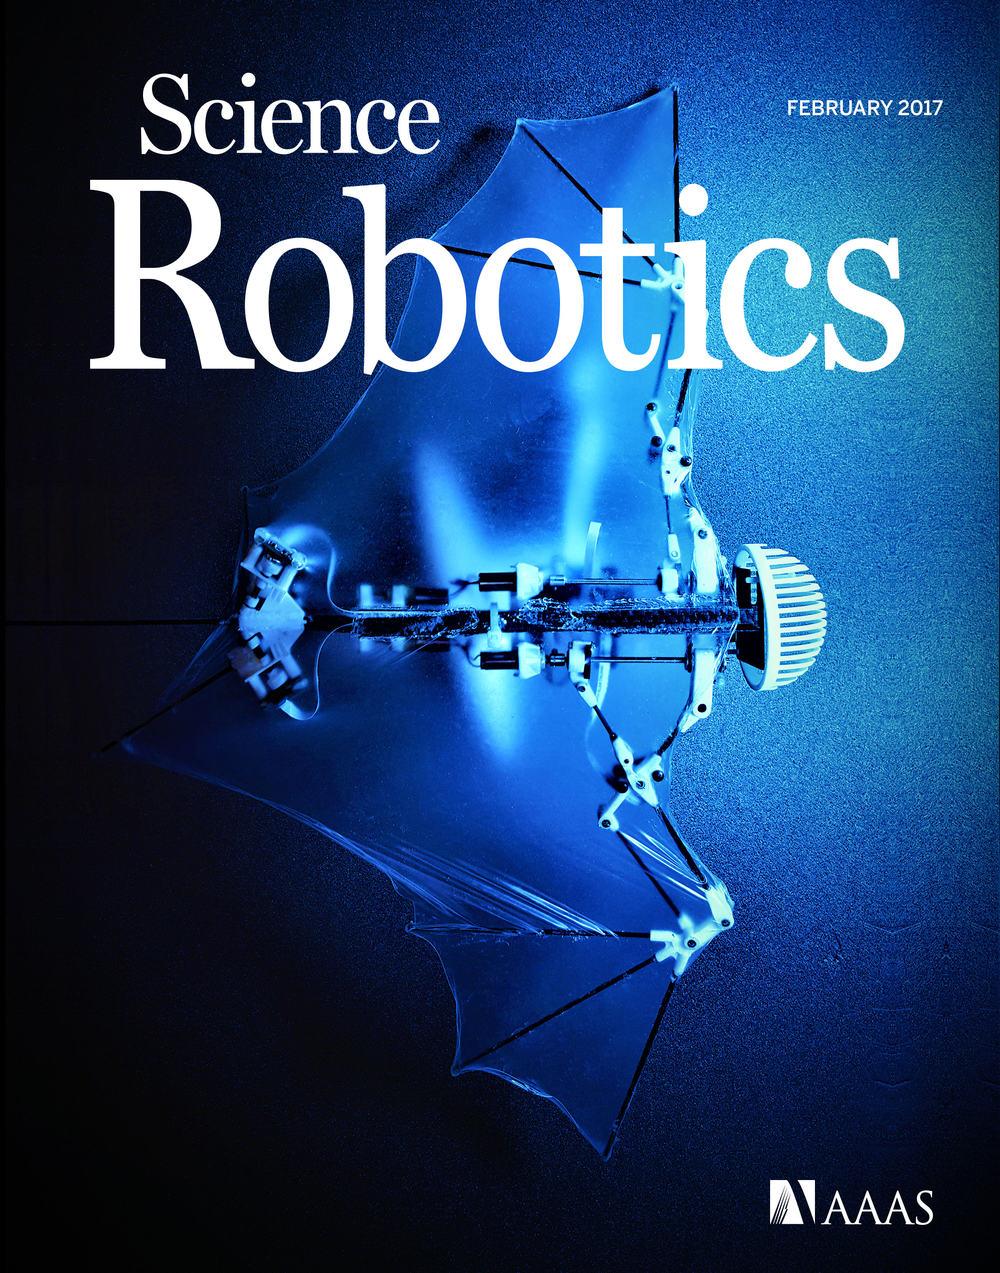 "The robotic ""bio-bat"" demonstrates self-contained autonomous flight by mimicking morphological properties of flexible bat wings. Cover photo reprinted with permission from AAAS."